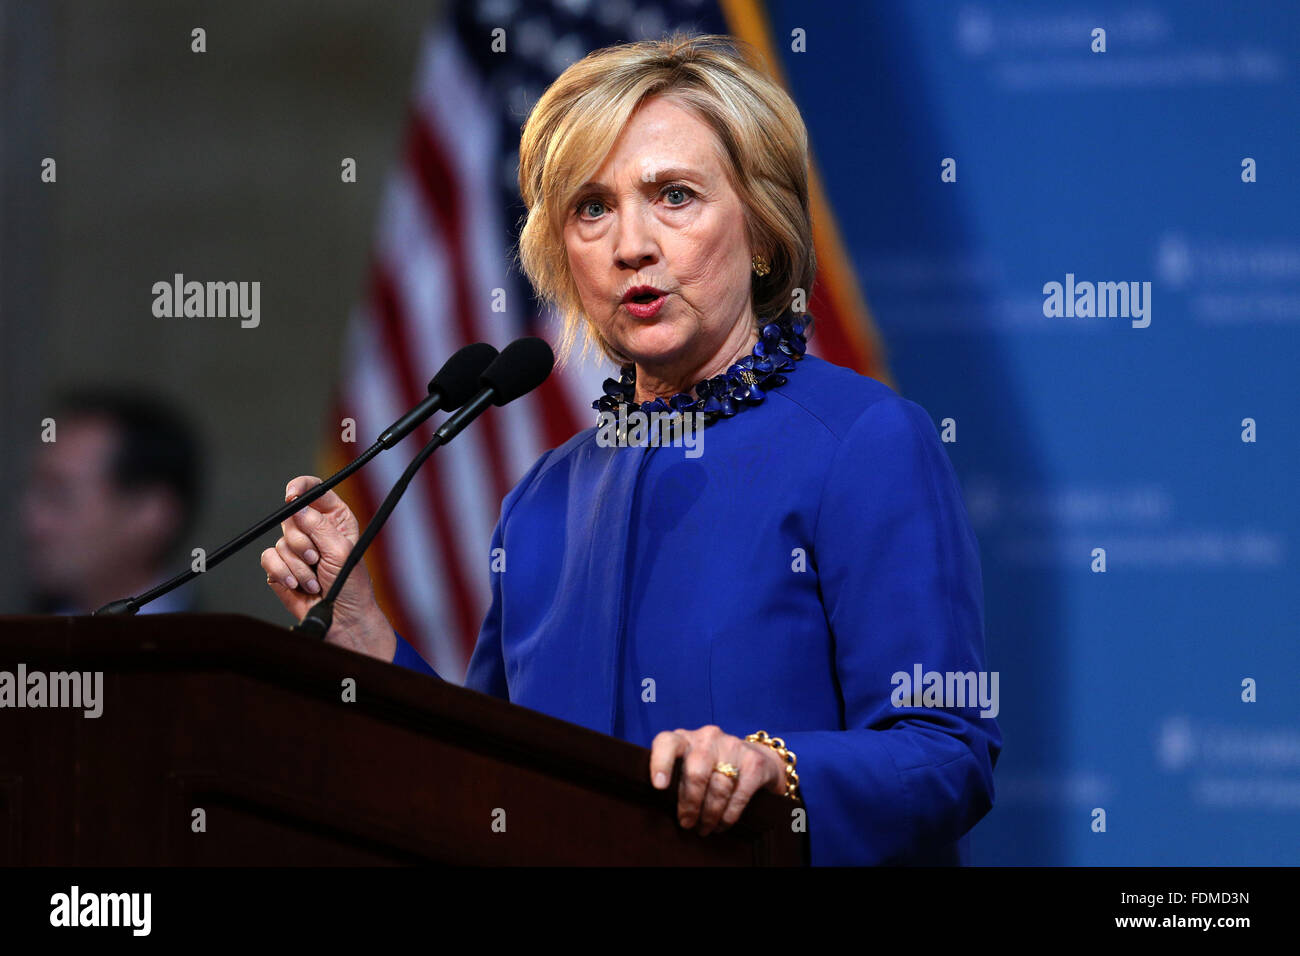 Democrat presidential candidate Hillary Clinton speaks during a campaign speech at Columbia University in New York - Stock Image